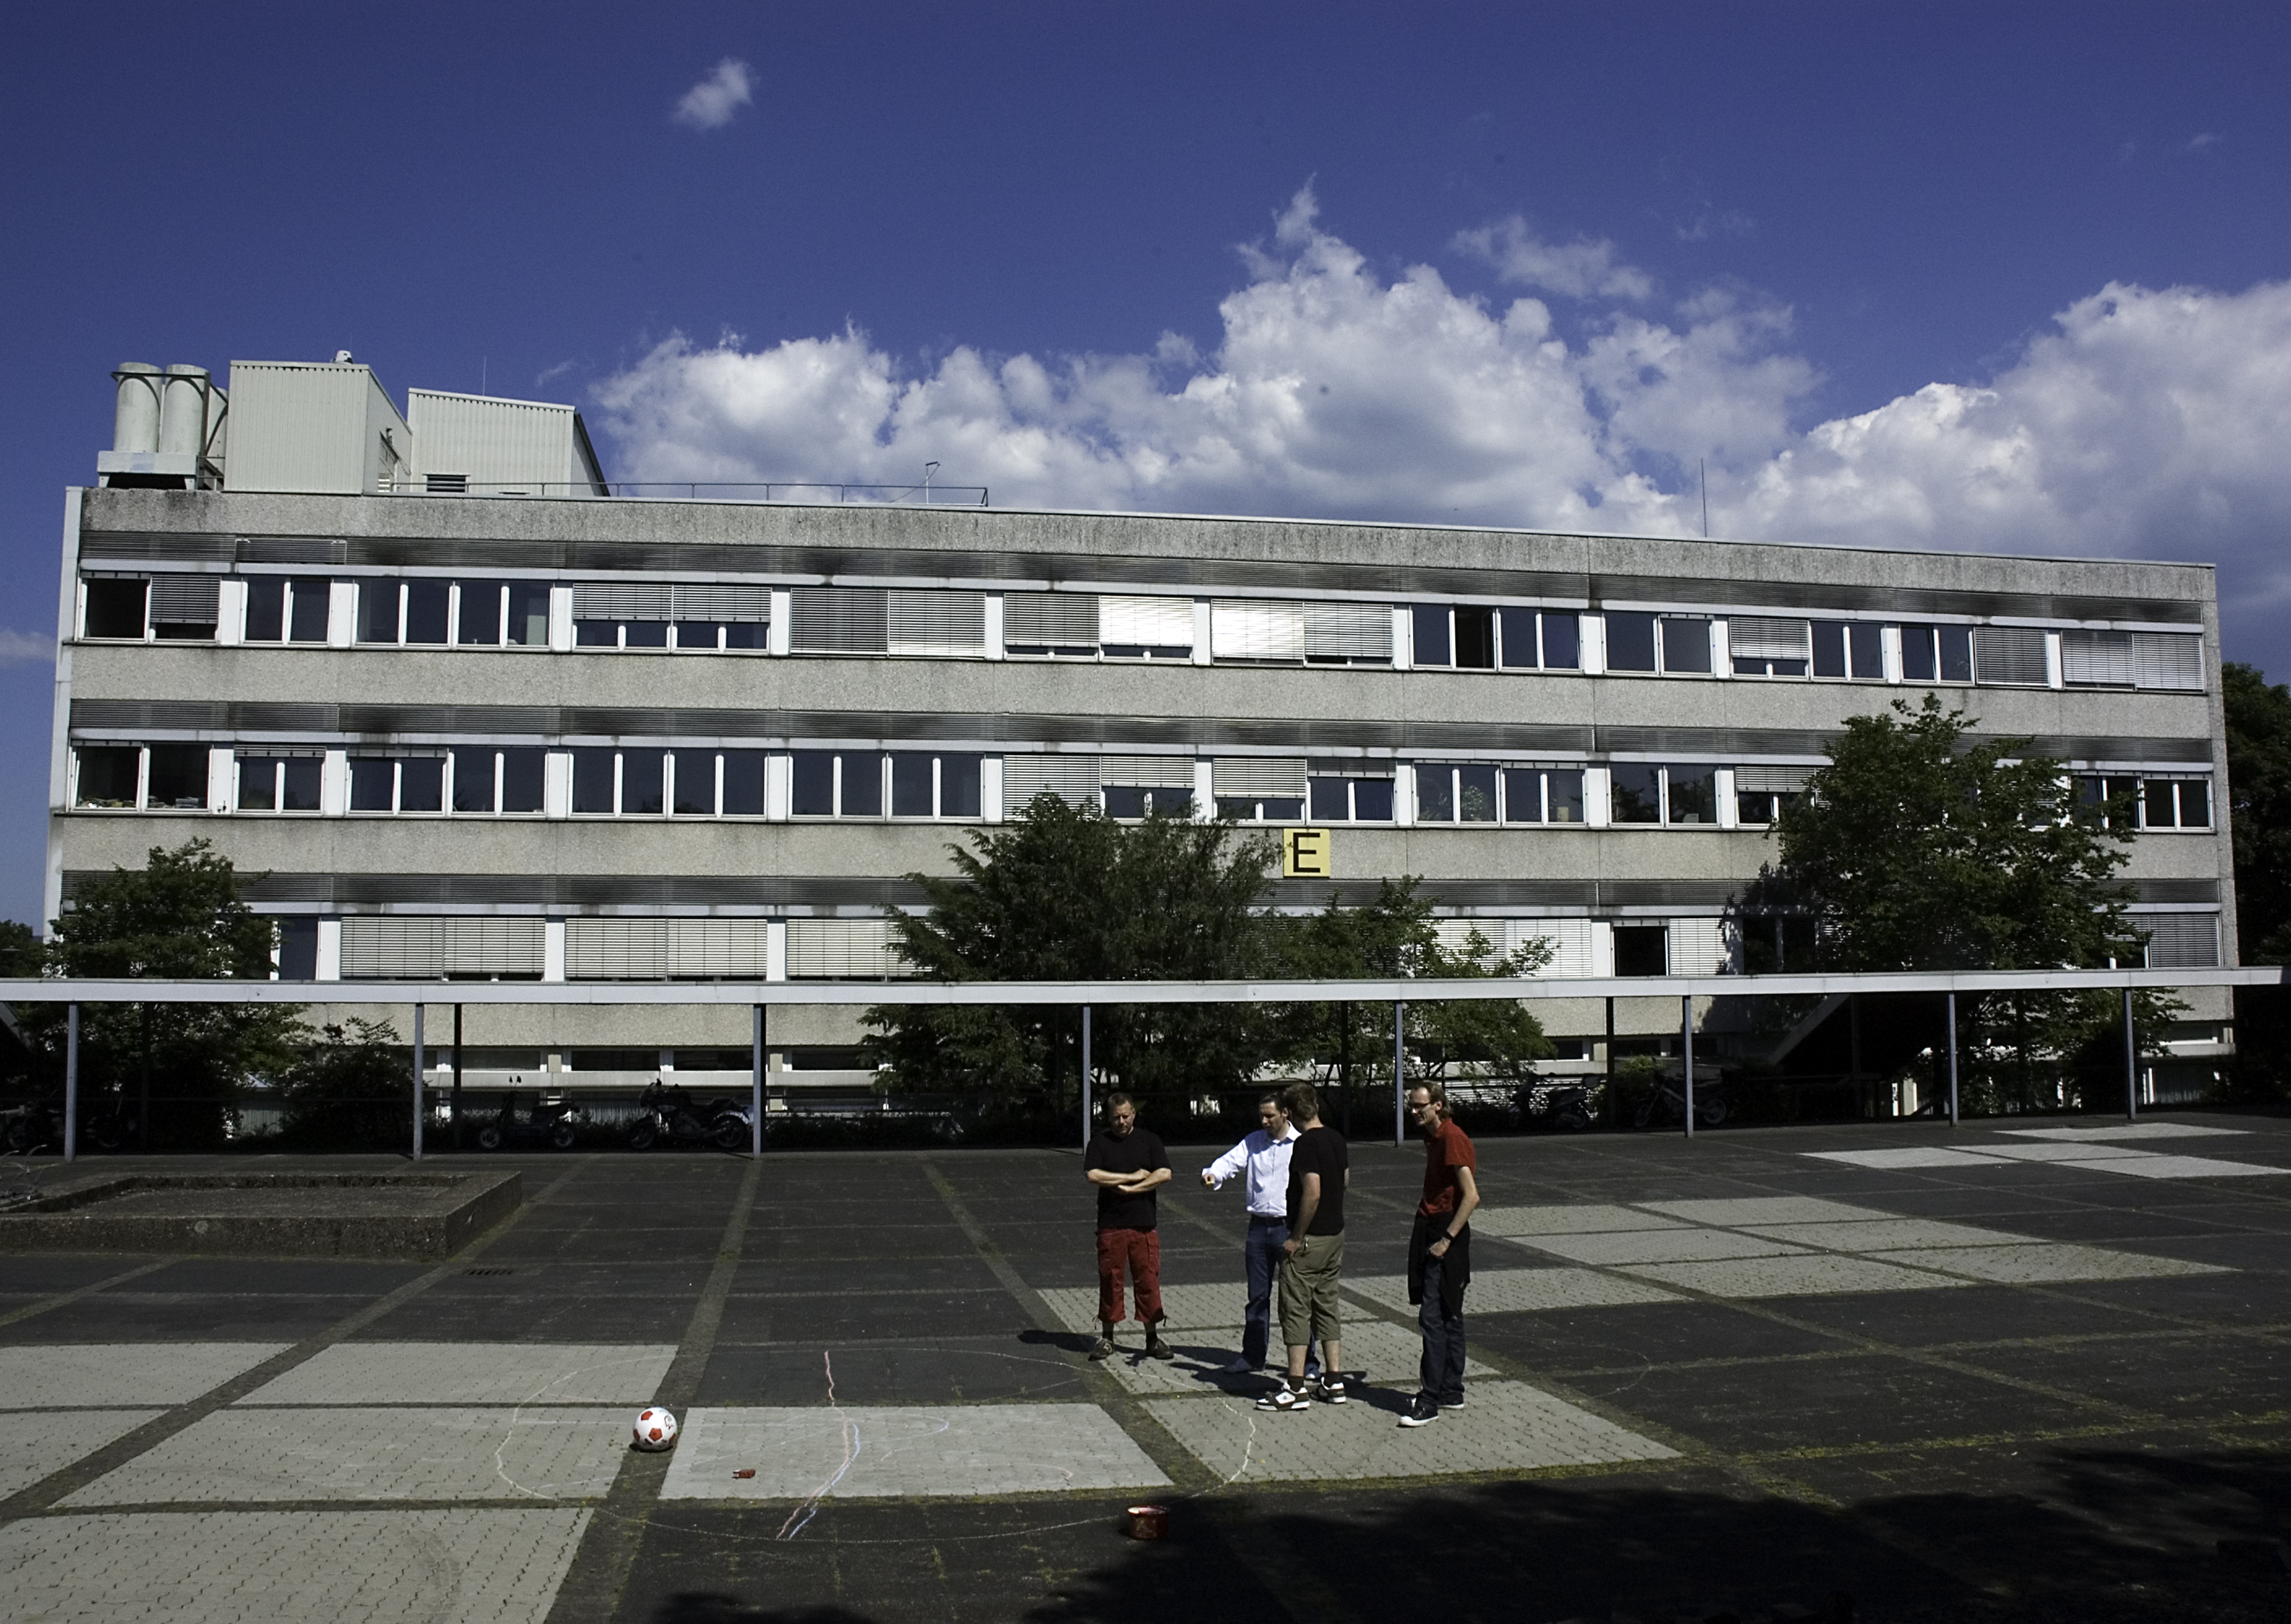 Hölderlin-Campus